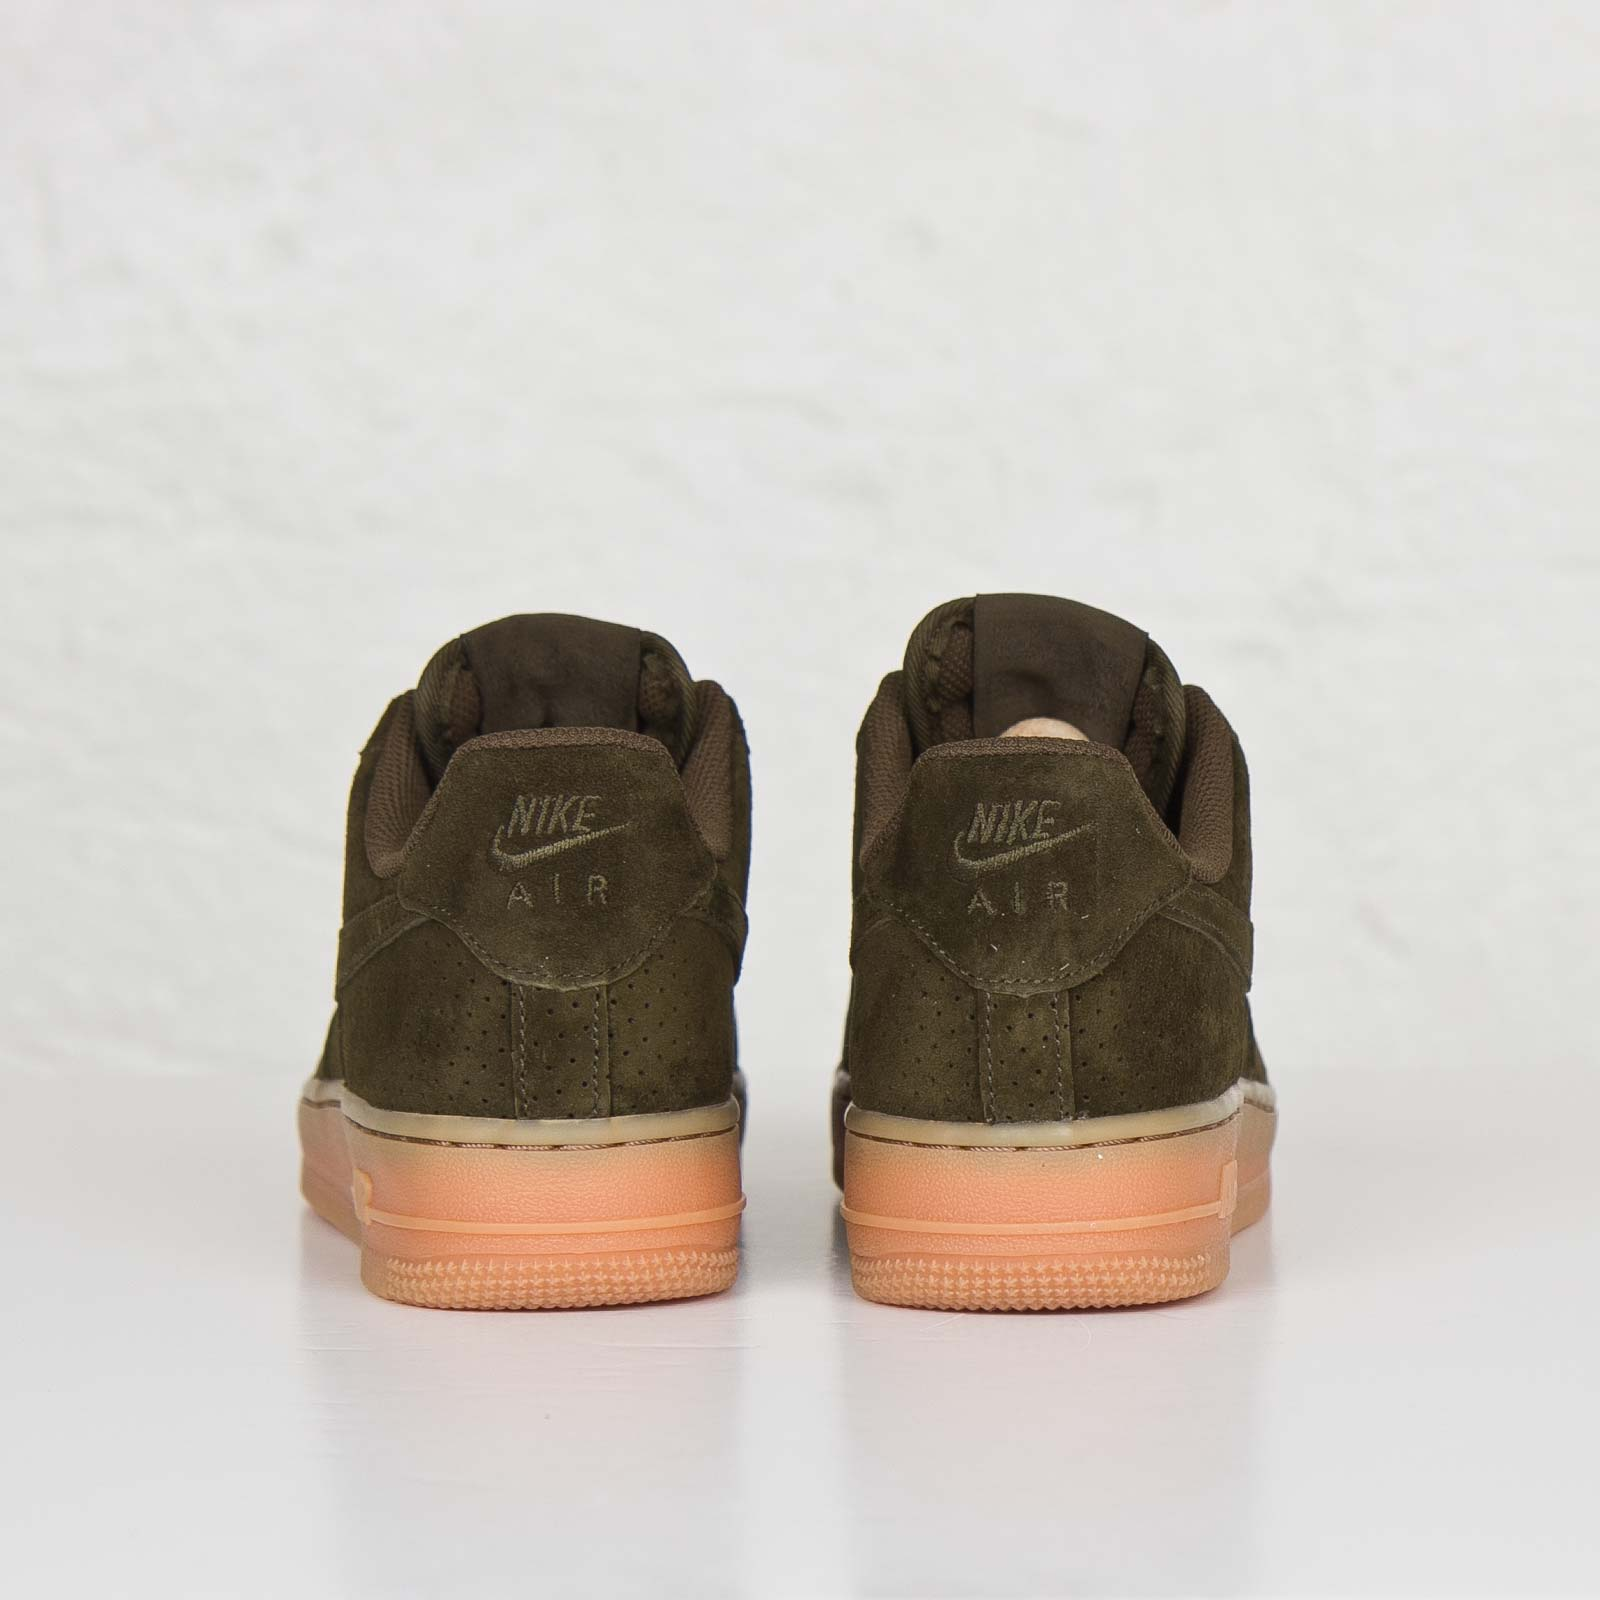 nike air force 1 groen suede